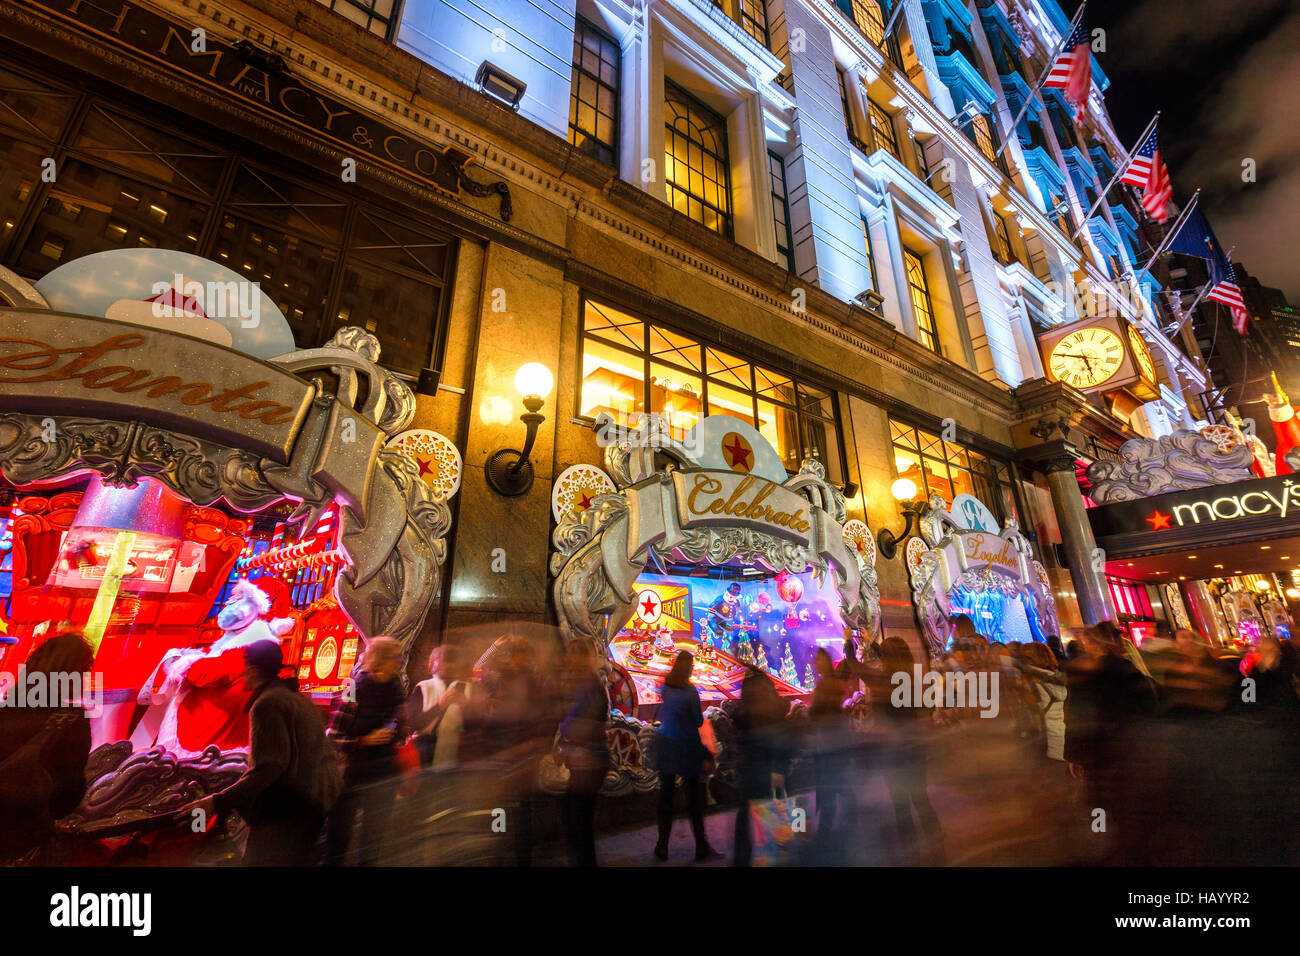 Macy's (Department Store) with Christmas lights and holiday window displays. Midtown Manhattan, New York CIty - Stock Image